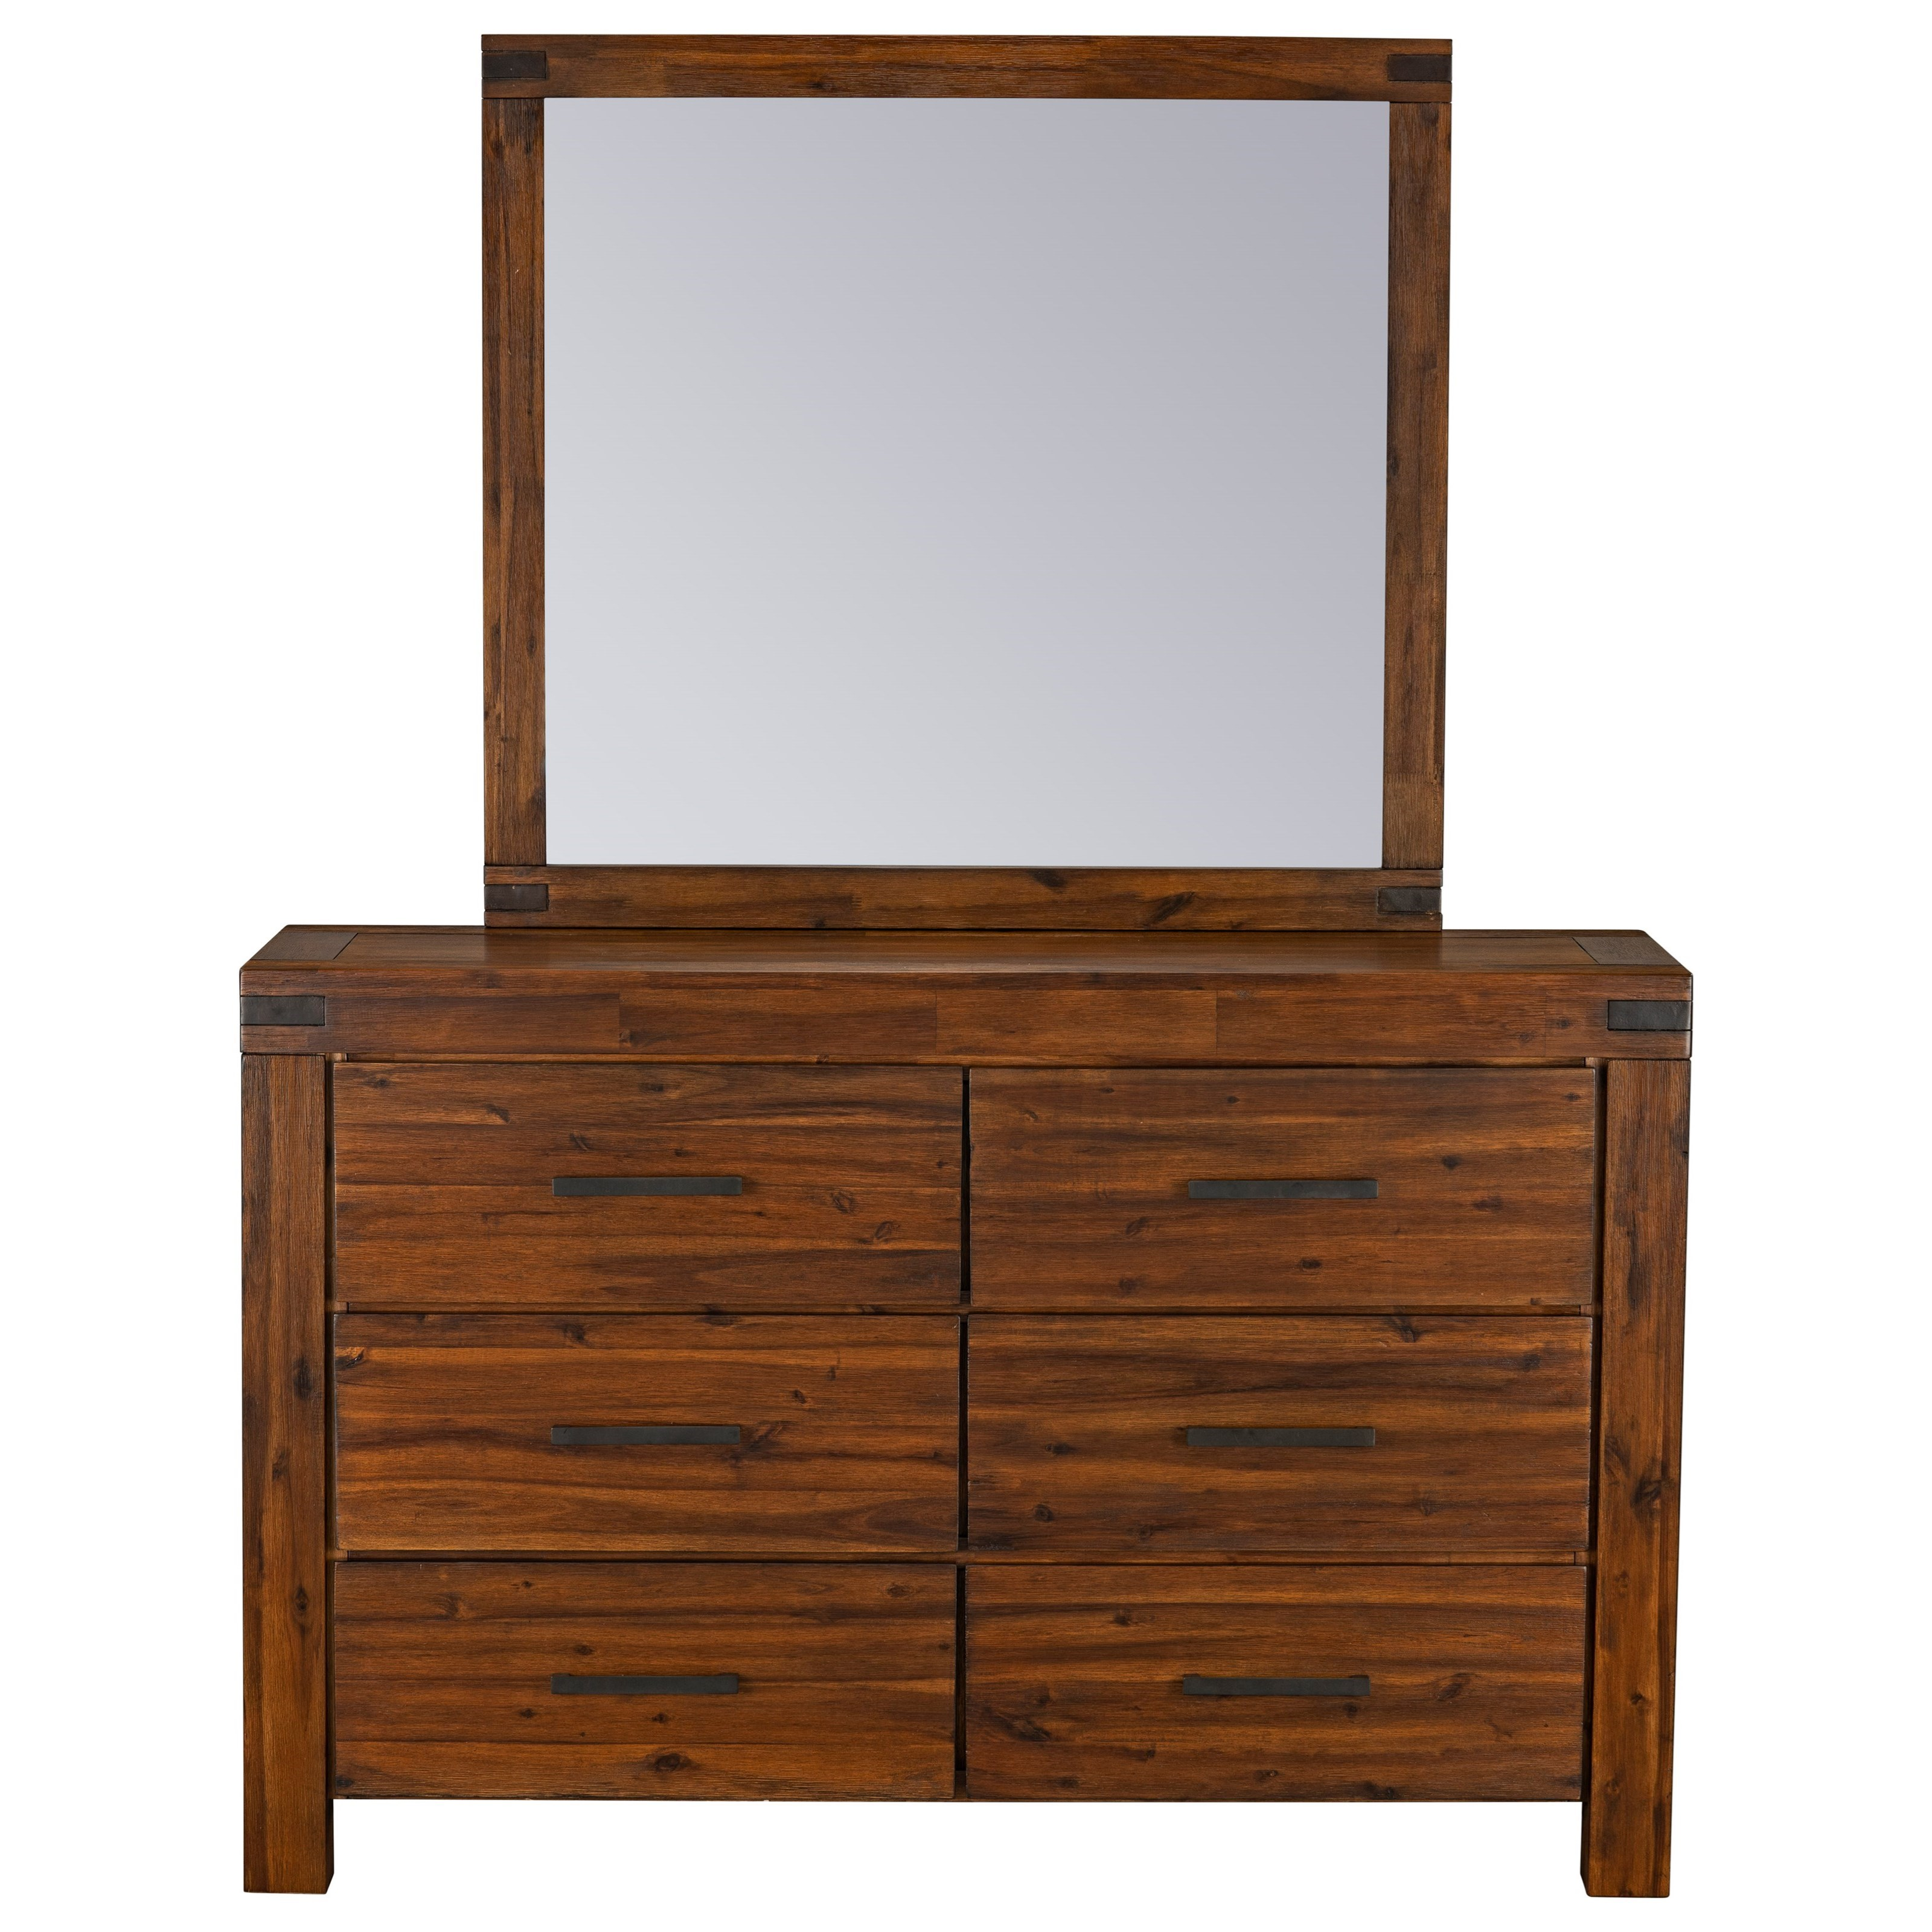 Arbor Dresser and Mirror Set by Standard Furniture at Beds N Stuff